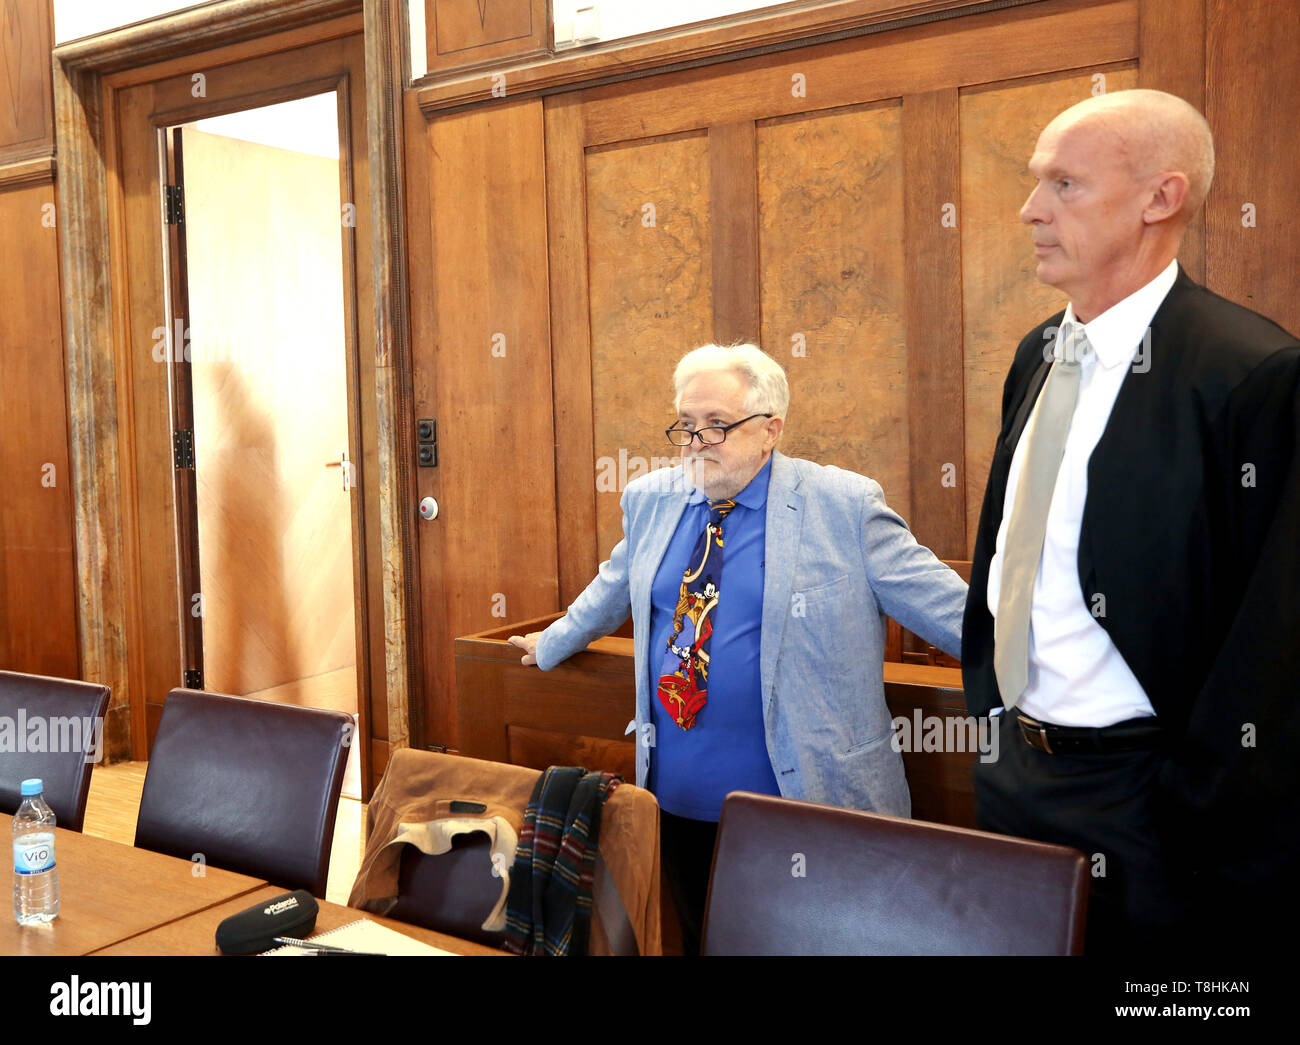 Duisburg, Germany. 13th May, 2019. The publicist Henryk M. Broder (l), who is accused of insulting, and his lawyer Joachim Steinhöfel are waiting for the trial to begin. In September 2016, at the request of the weekly newspaper 'Junge Freiheit', Broder had said about the Islamic scholar Lamya Kaddor that she had 'a gossip on her hands'. Broder appealed against an order of punishment, which is why the trial is now at trial. Credit: Roland Weihrauch/dpa/Alamy Live News - Stock Image